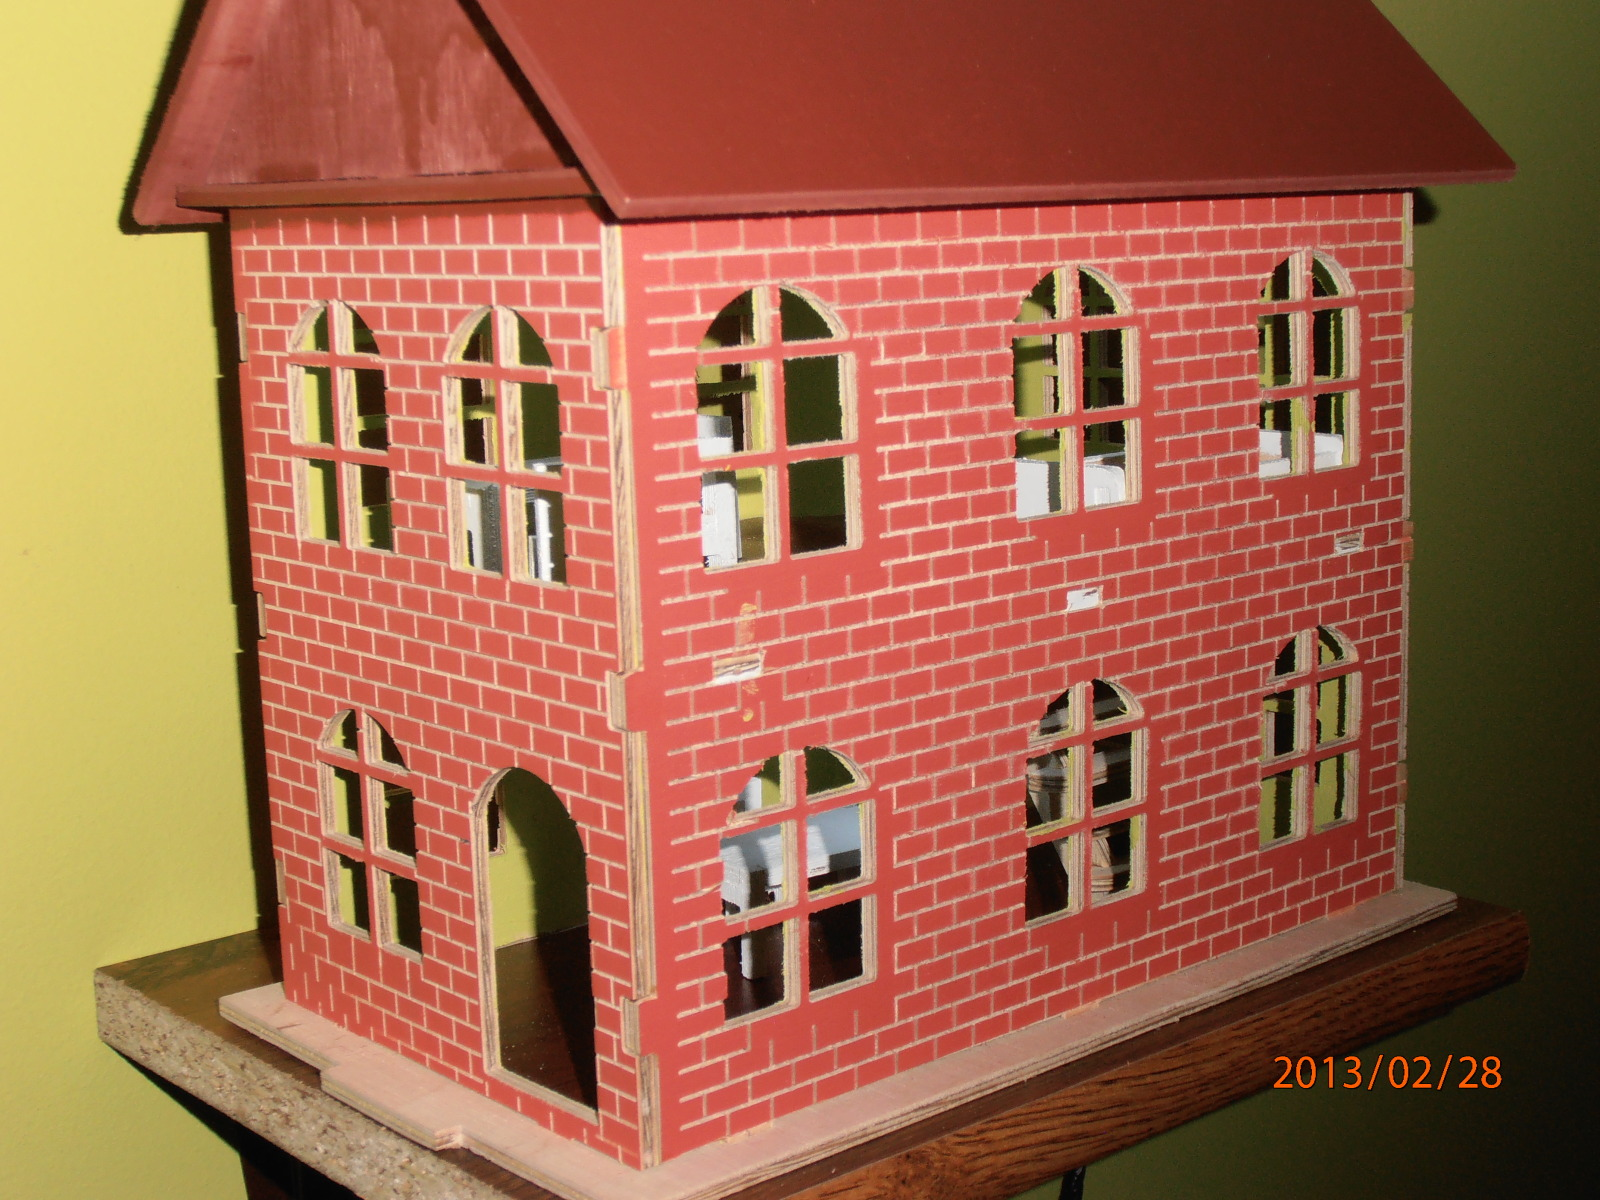 Two Story Building Laser Cutting Projects Free DXF File